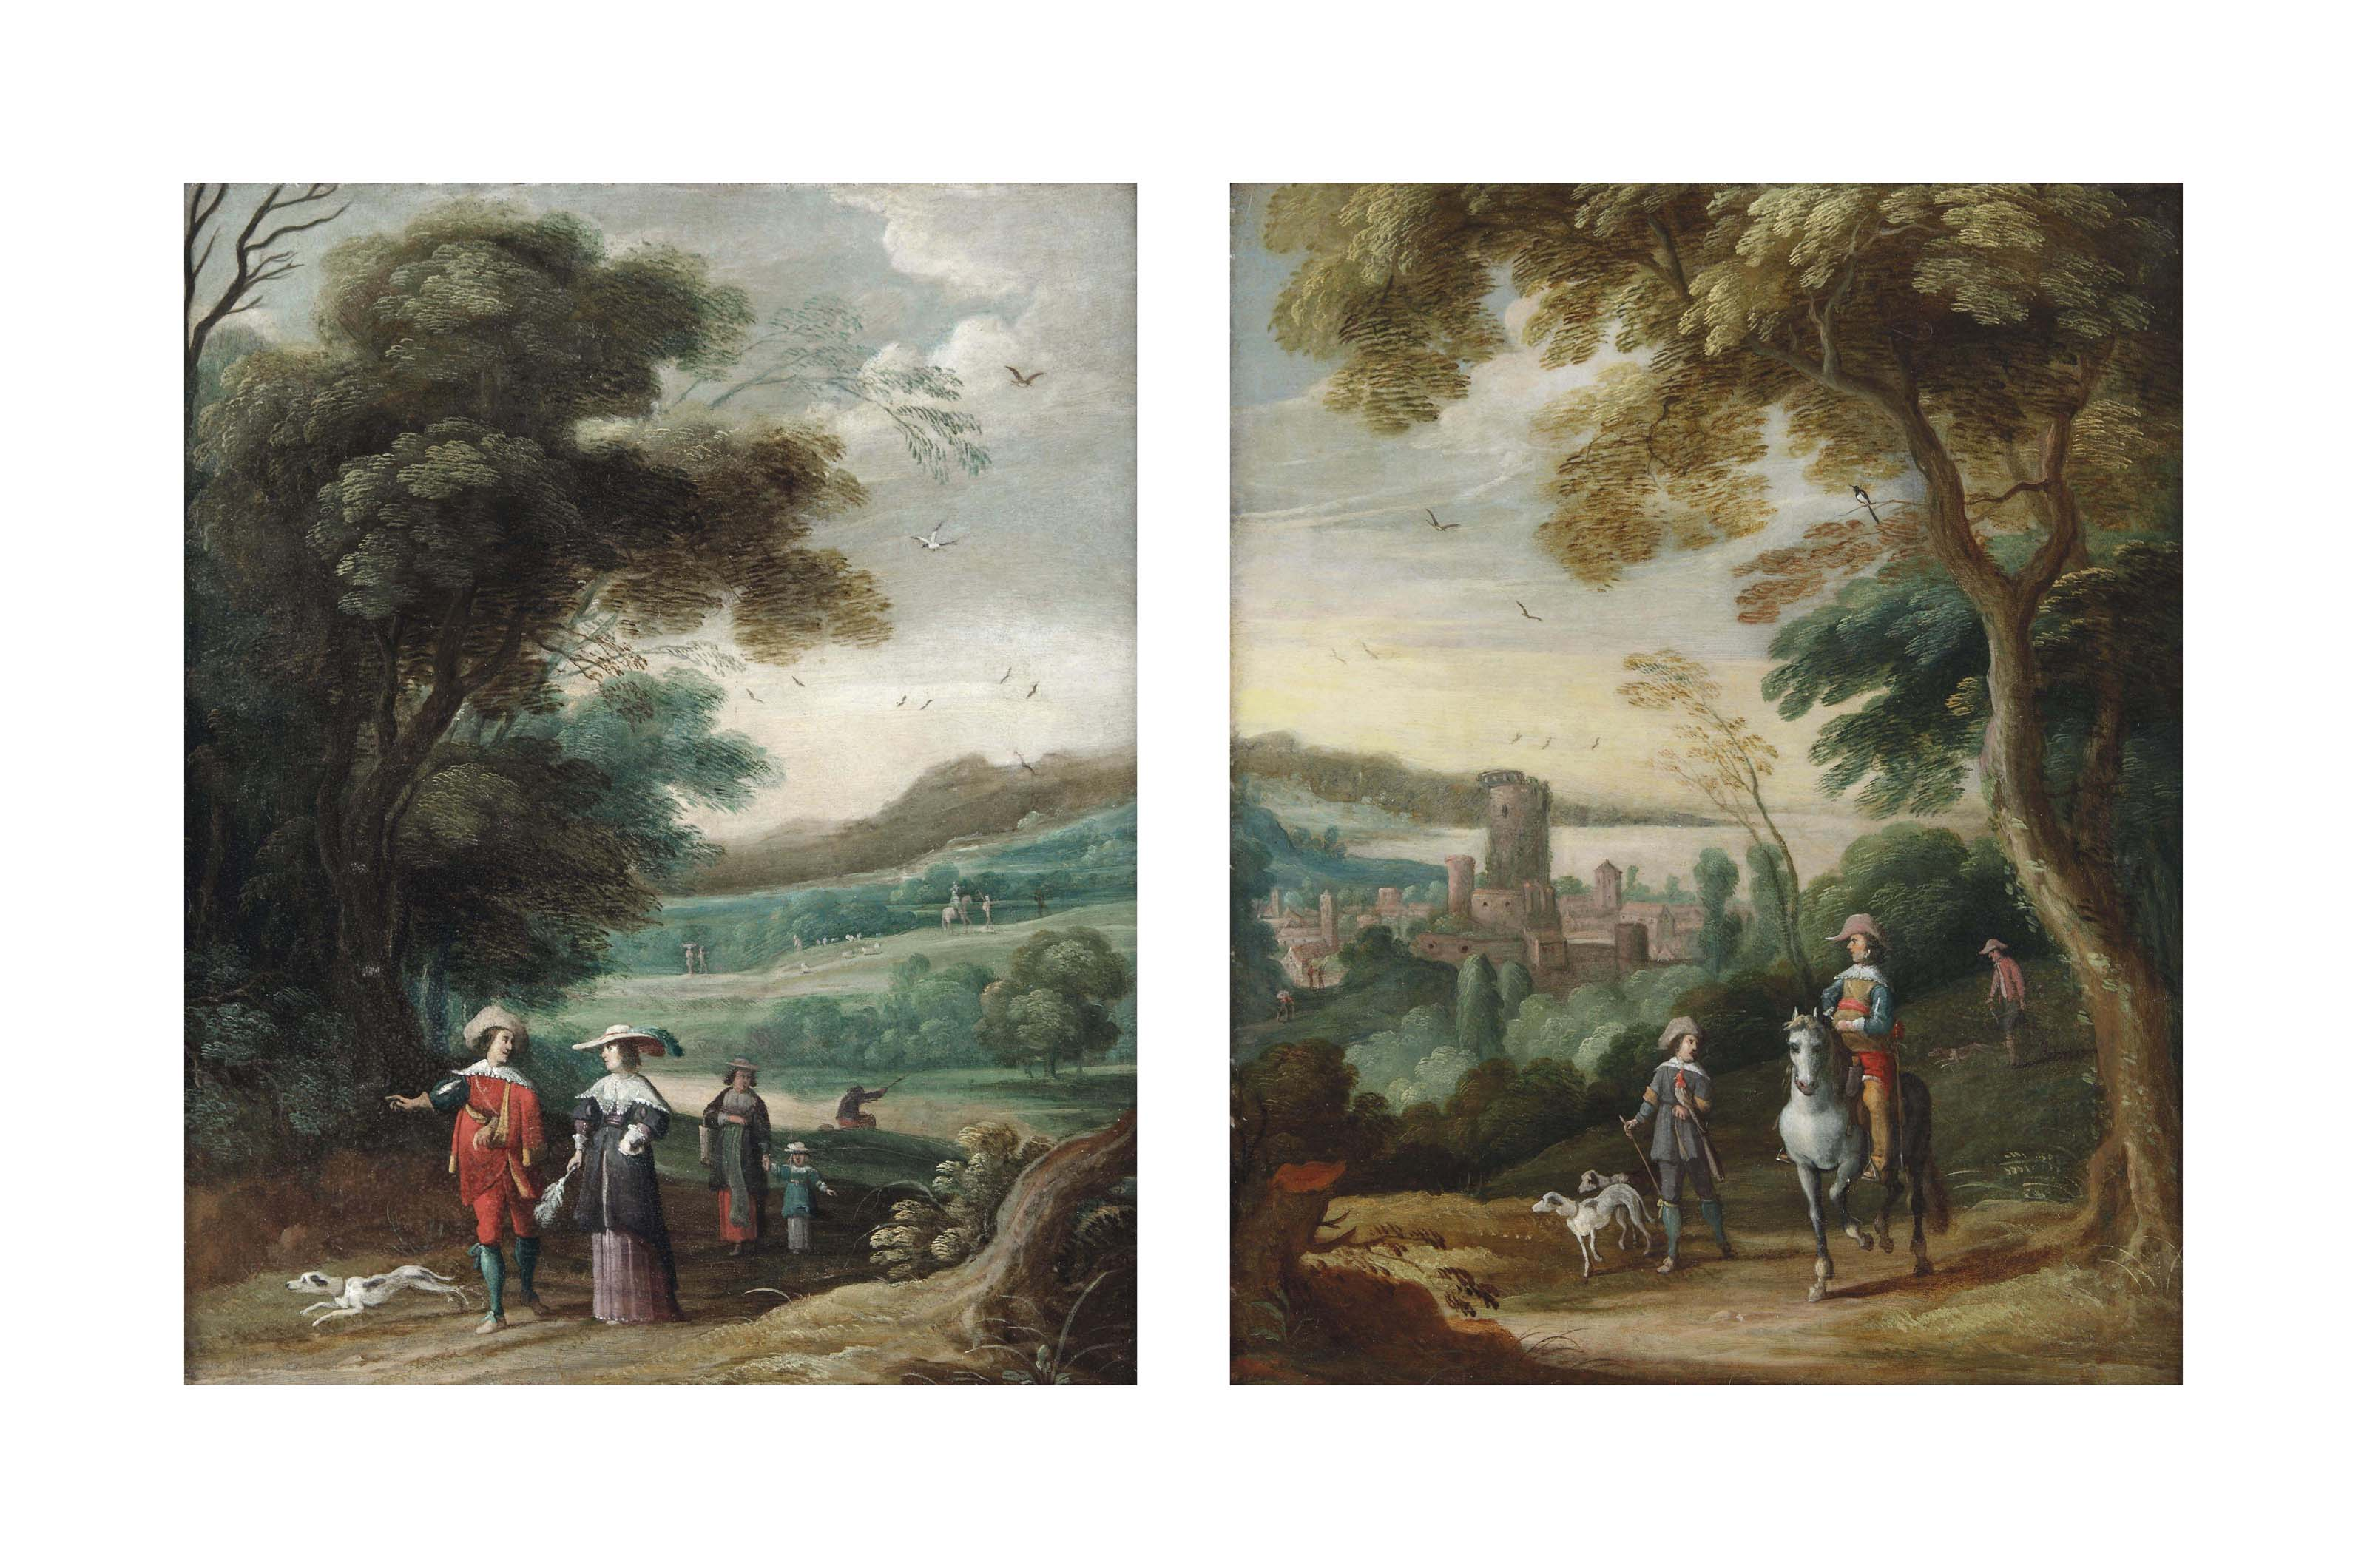 A wooded landscape with elegant figures strolling; and A landscape with travellers on a sandy path, a town beyond